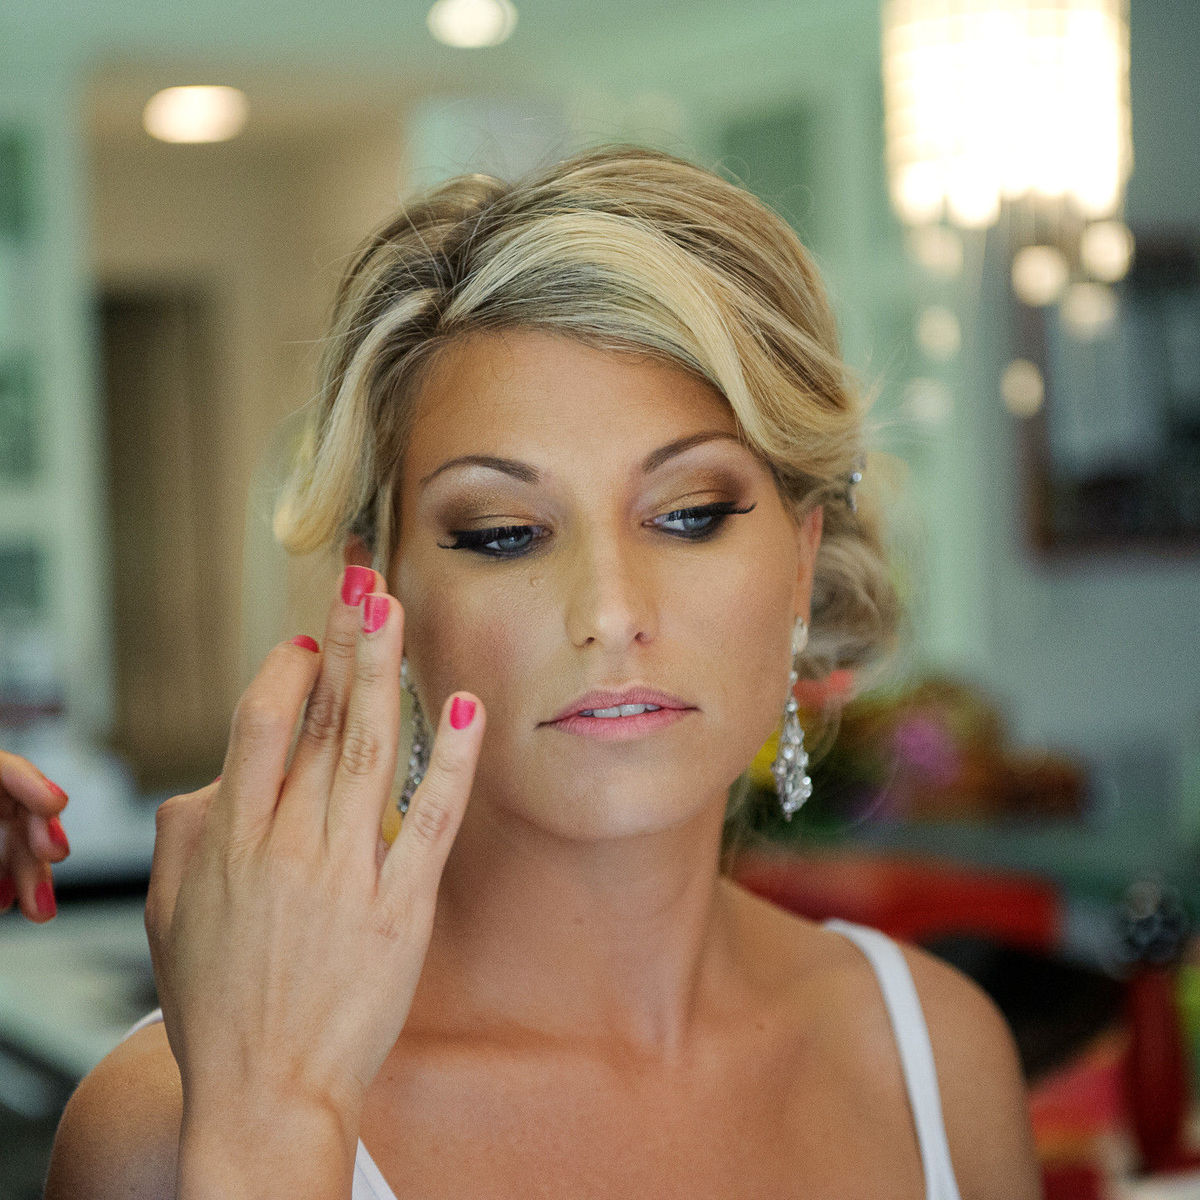 fort lee wedding hair & makeup - reviews for hair & makeup